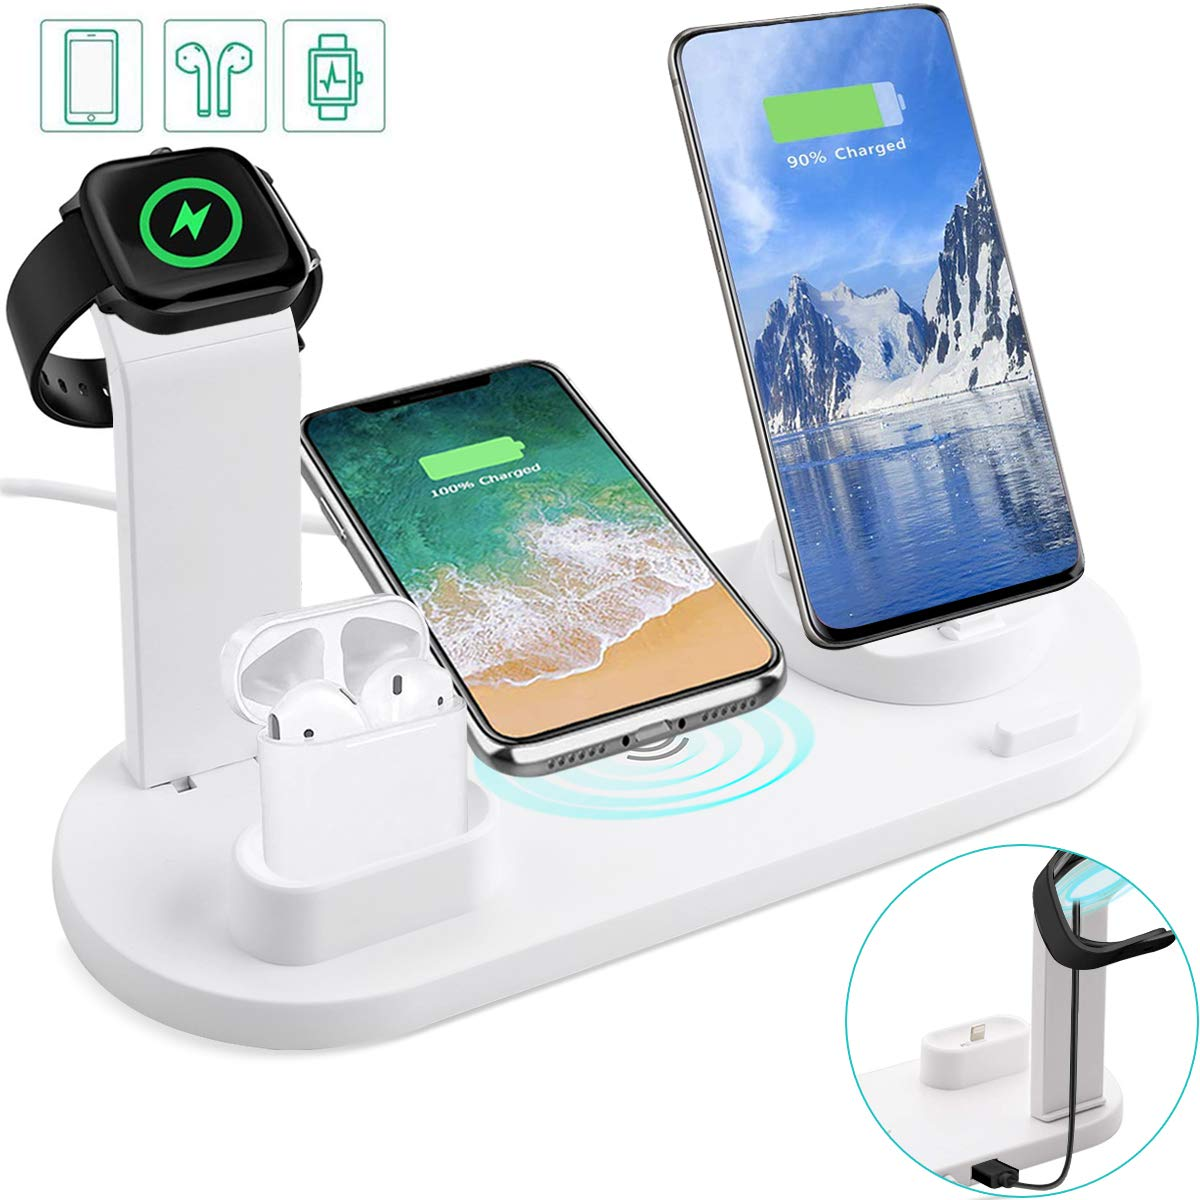 Auzev Wireless Charger Station,6 in 1 Charging Dock for AppleMicroType C PhonesiWatchAirpods,Qi Fast Wireless Charger Compatible with iPhone